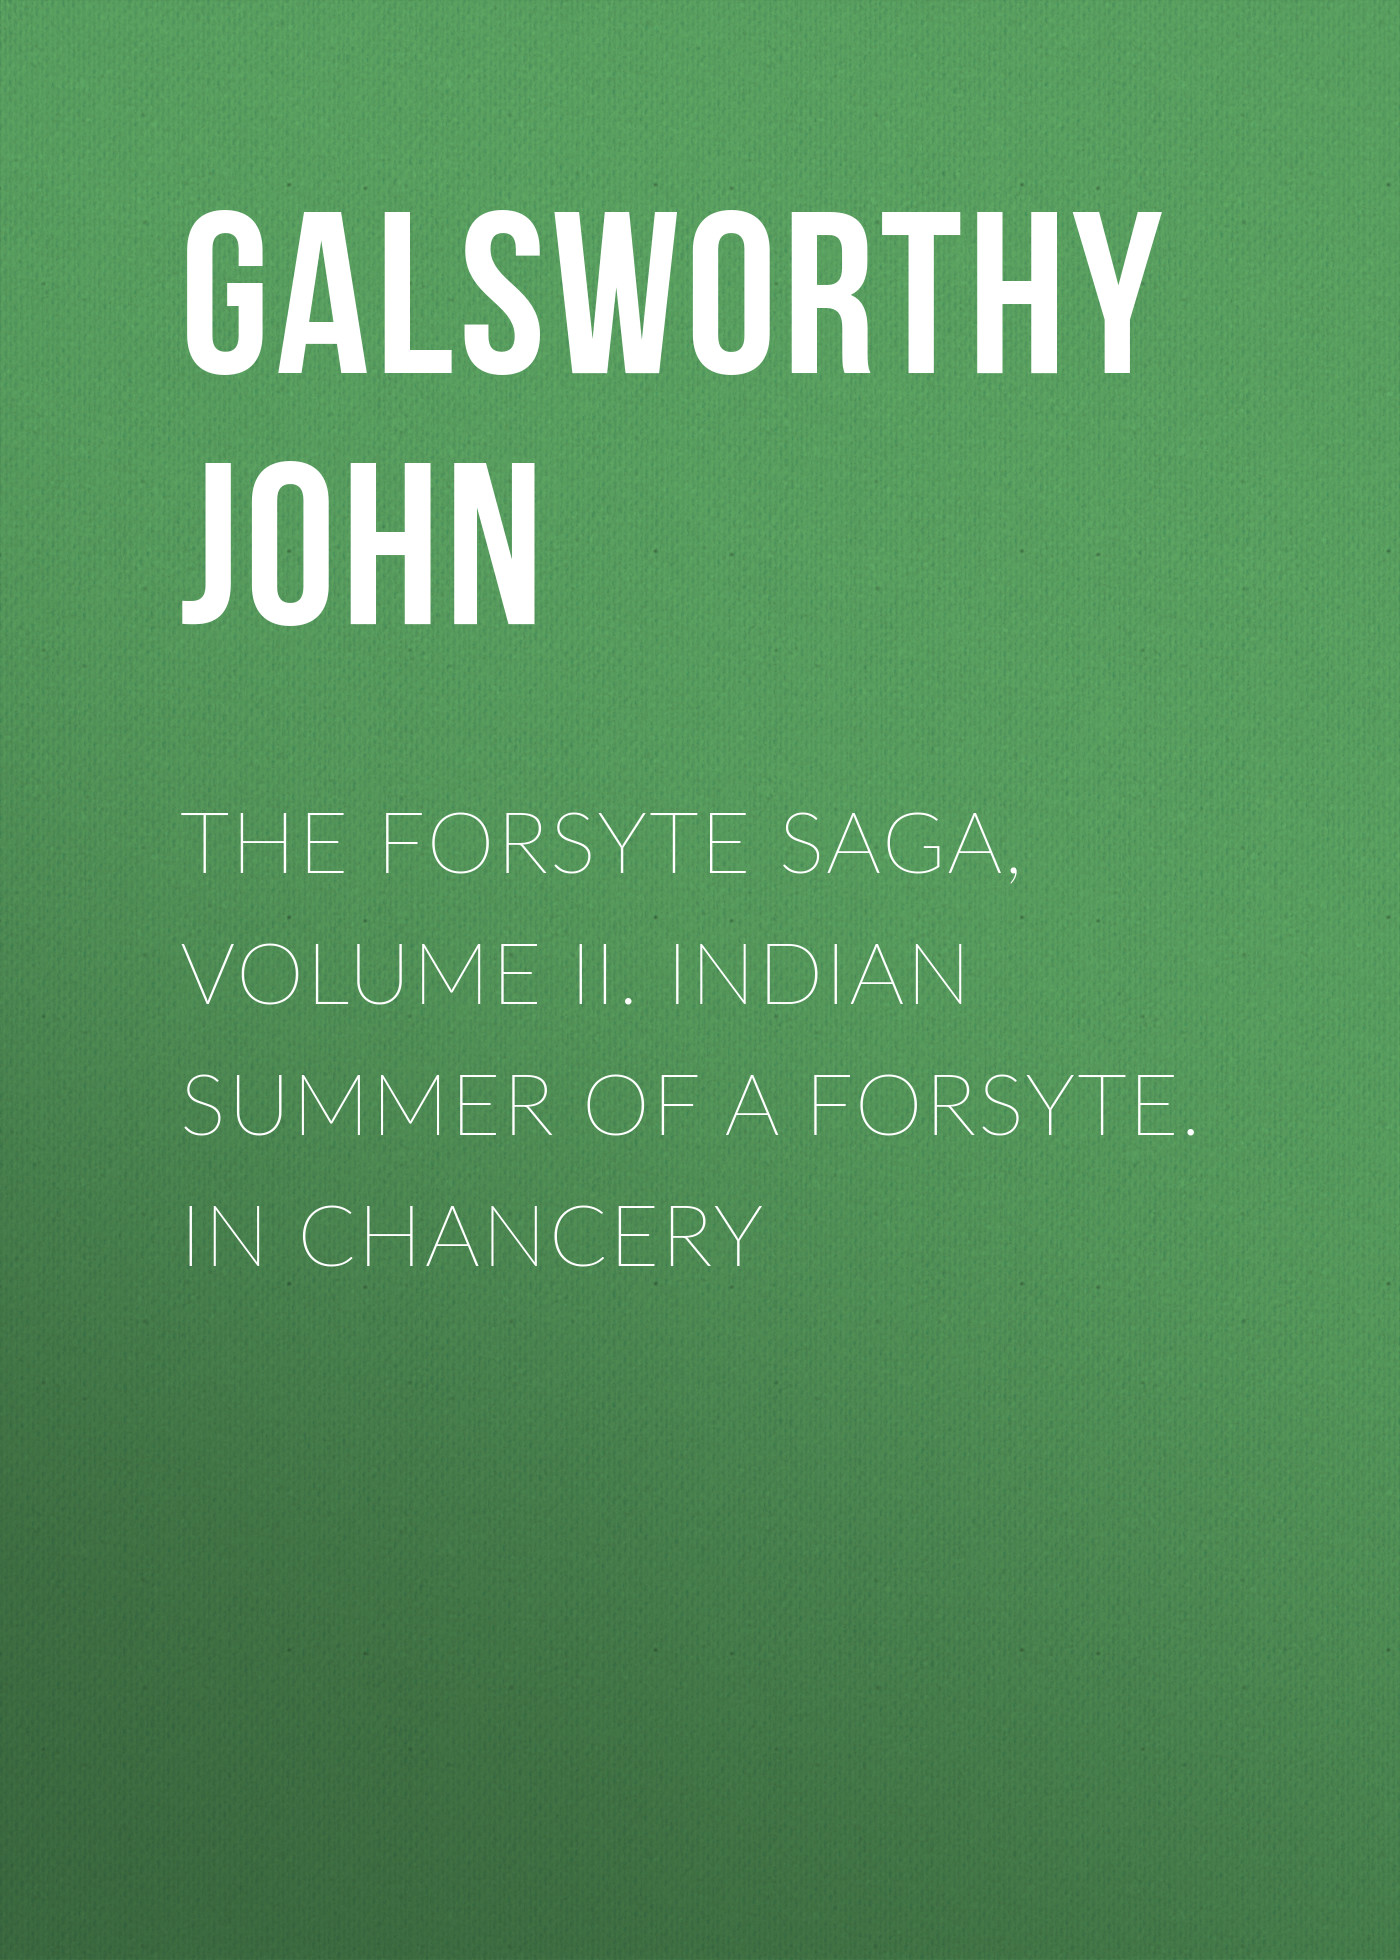 Galsworthy John The Forsyte Saga, Volume II. Indian Summer of a Forsyte. In Chancery пилки для лобзика makita 100мм 5шт a 85721